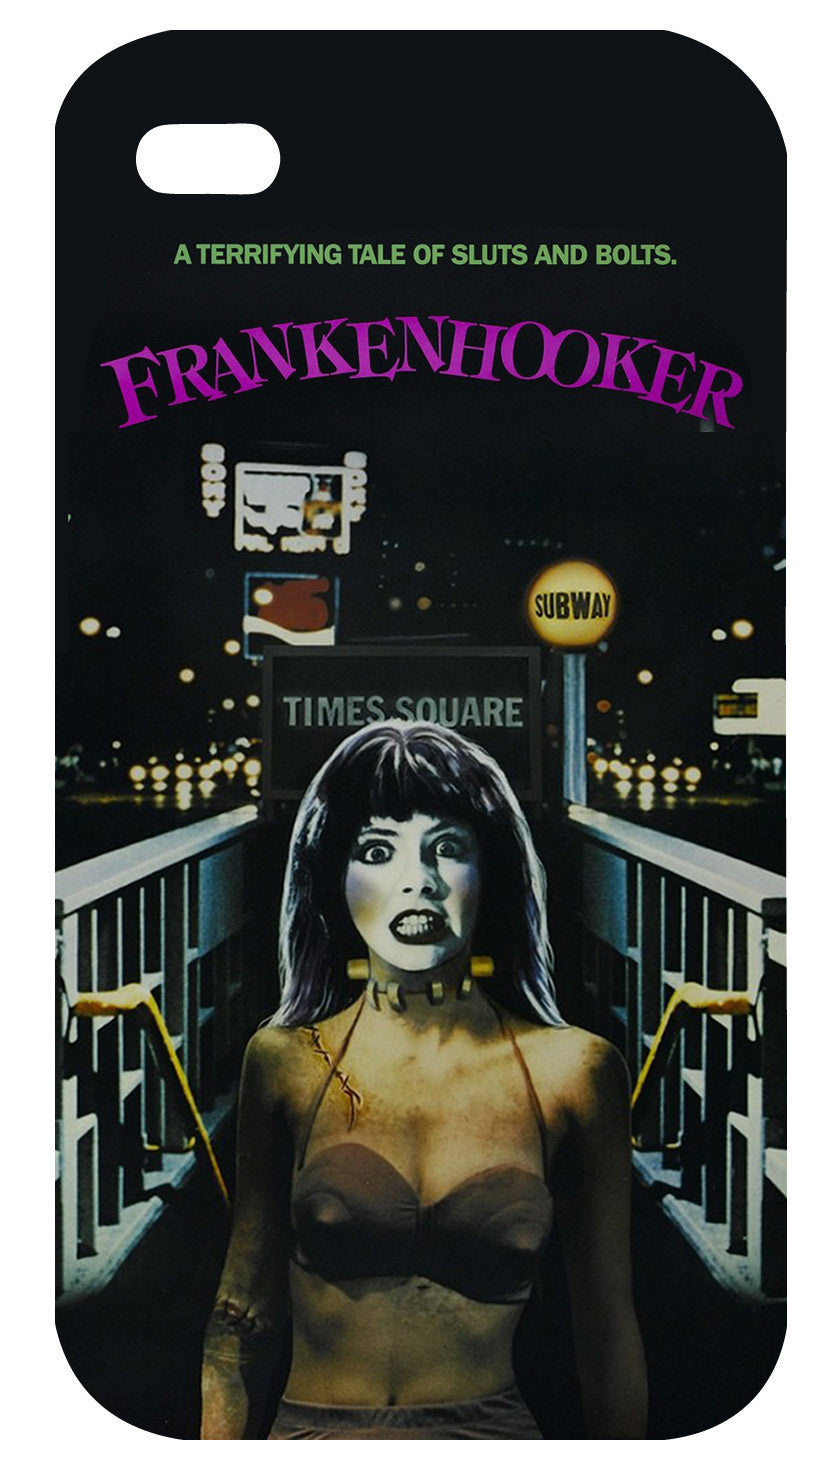 Frankenhooker iPhone 4/4S Case